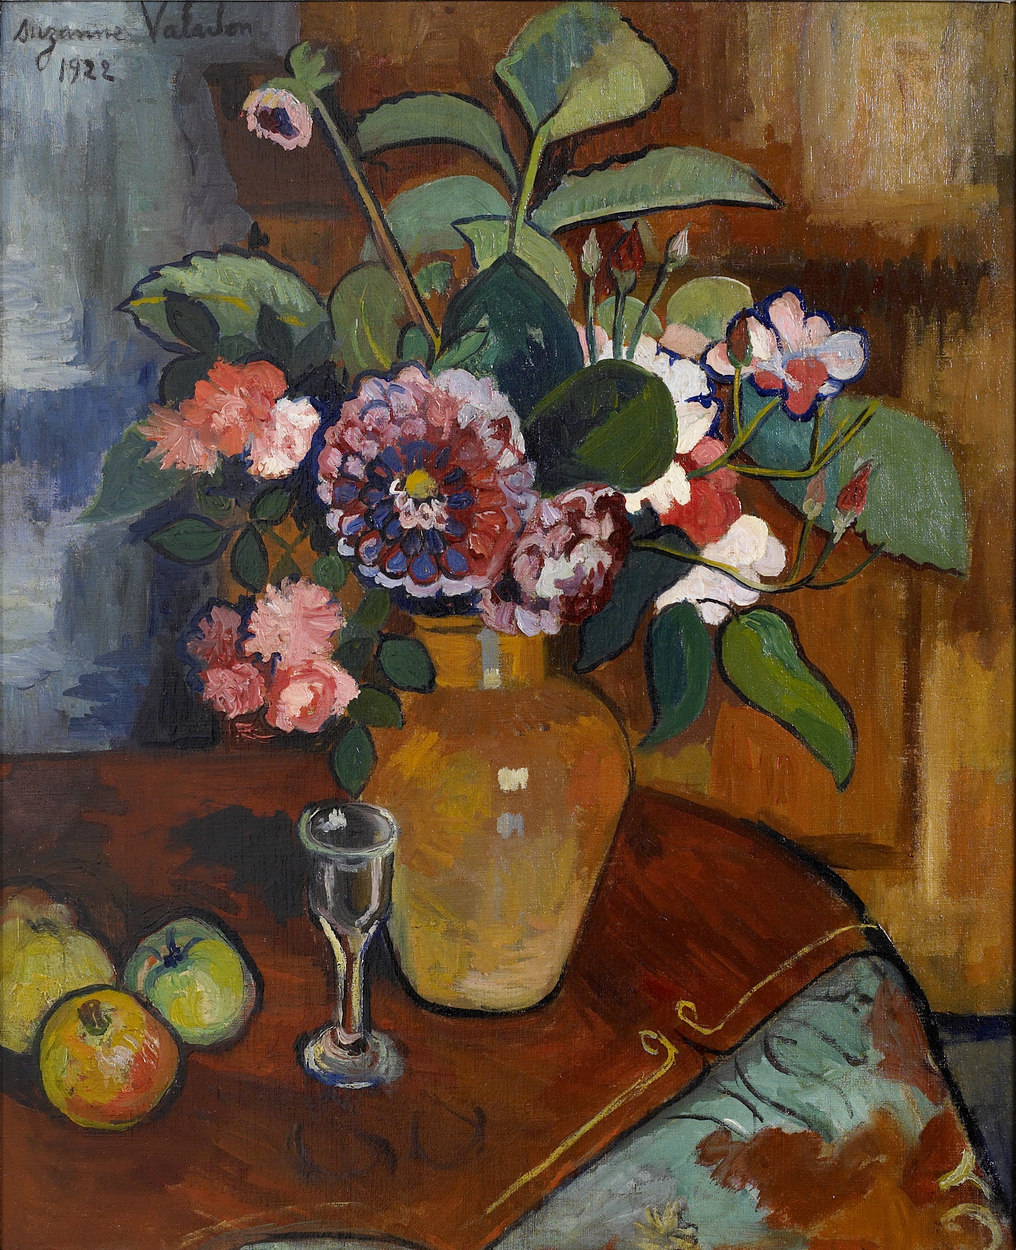 schiller bodo artists suzanne valadon french 1865 1938 artworks nature morte 1922. Black Bedroom Furniture Sets. Home Design Ideas